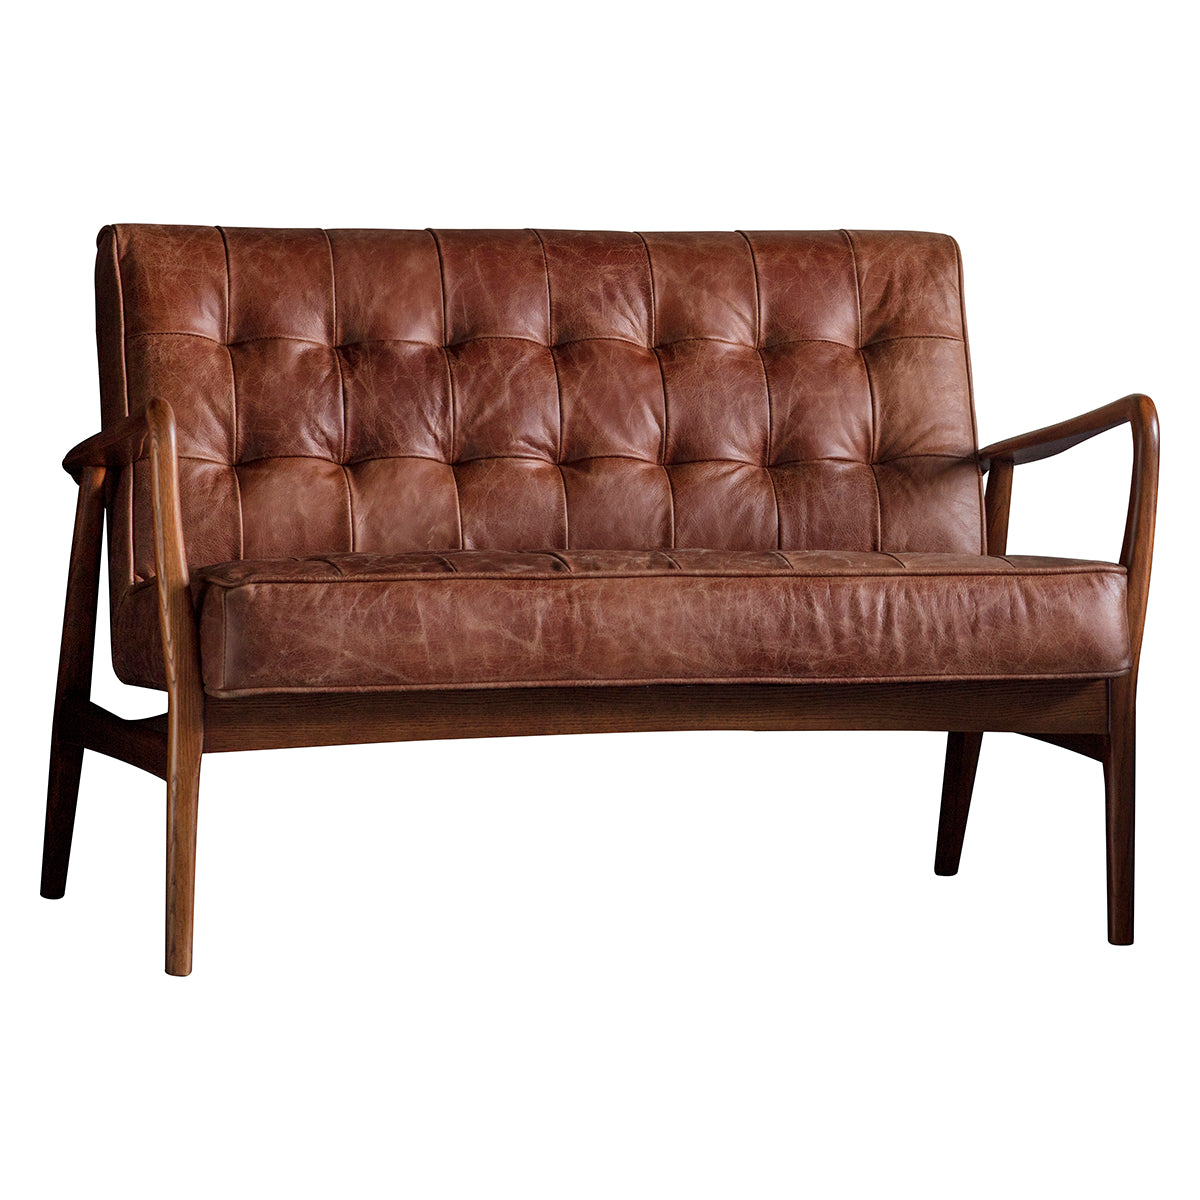 Barton 2 Seater Sofa Vintage Brown Leather - Ezzo